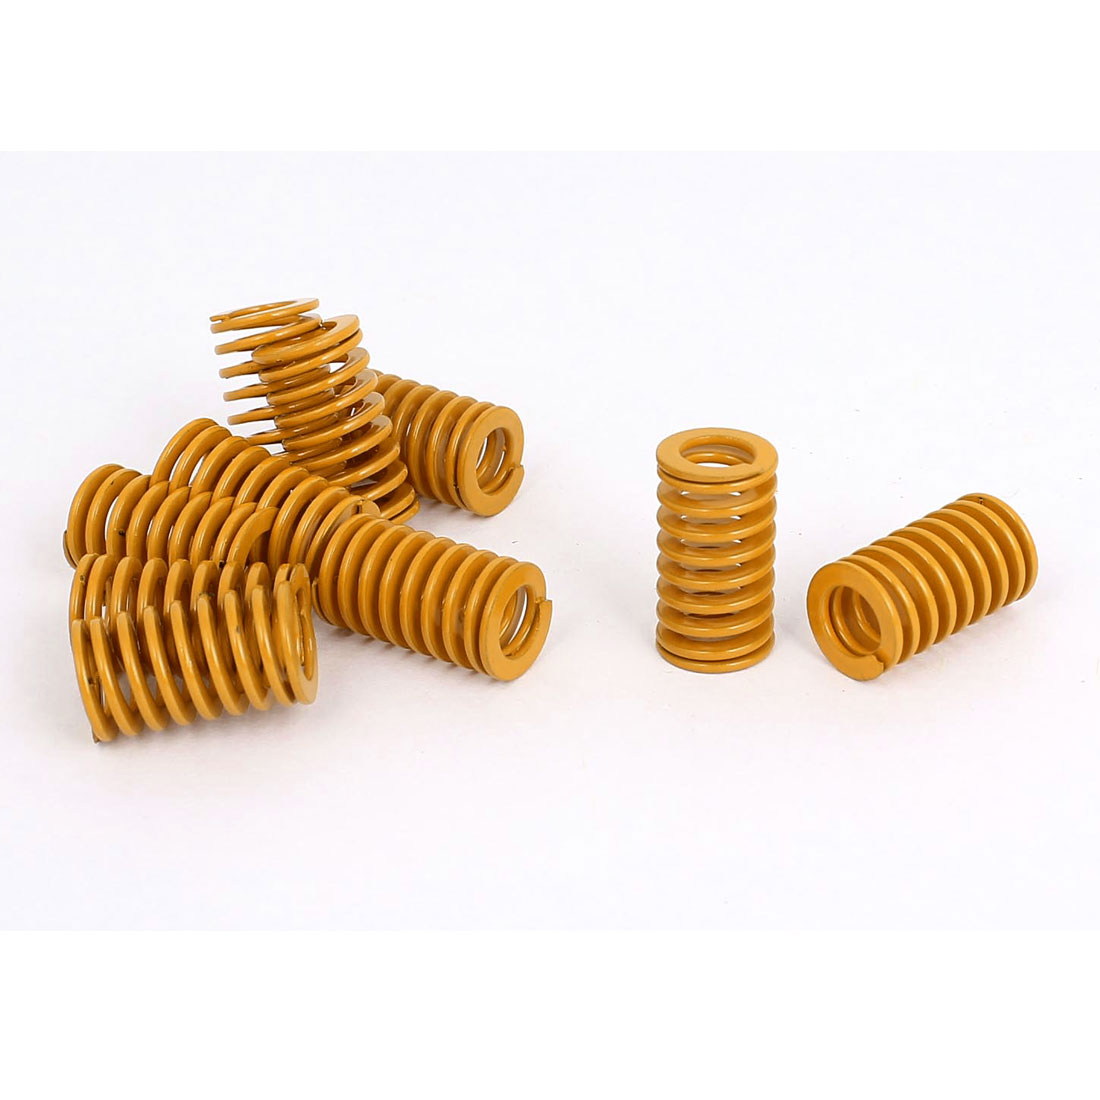 12mm OD 20mm Long Light Load Stamping Compression Mold Die Spring Yellow 10pcs